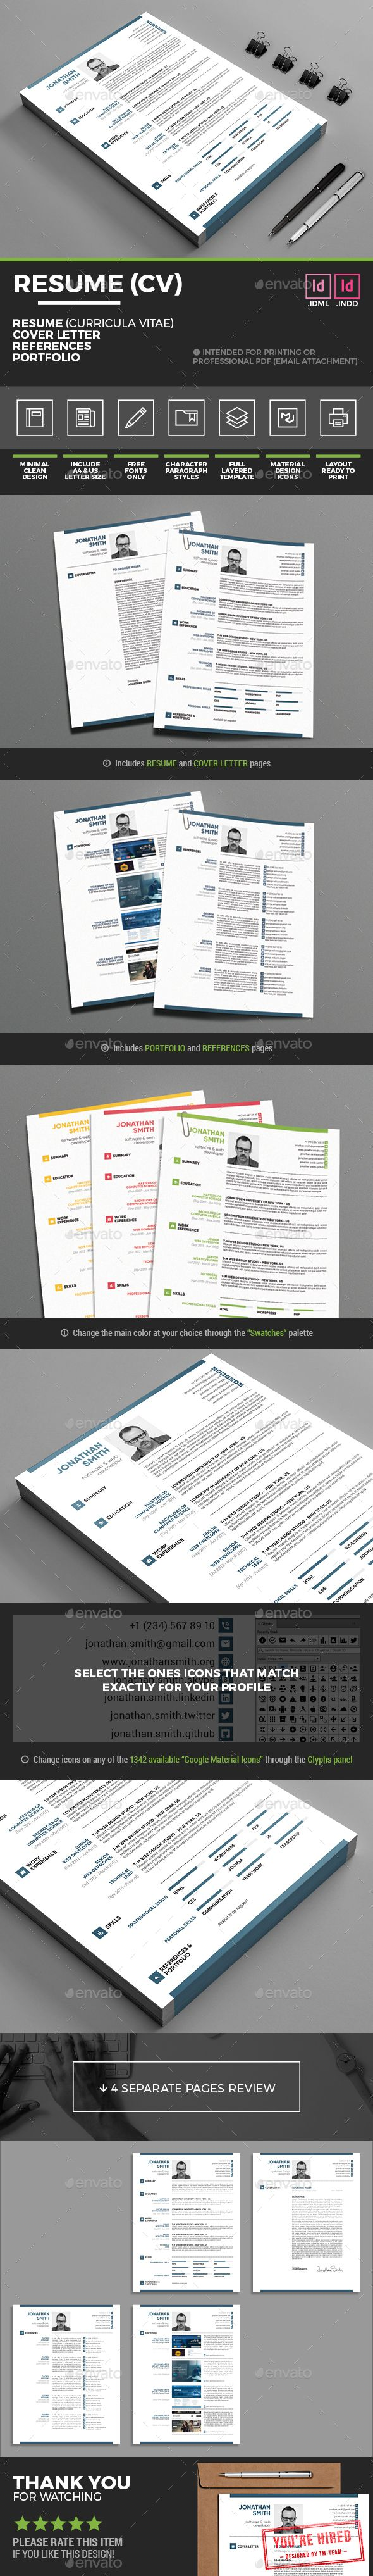 Cv Templates Pdf%0A Resume Template  Minimal Clean Resume  Curricula Vitae  InDesign INDD